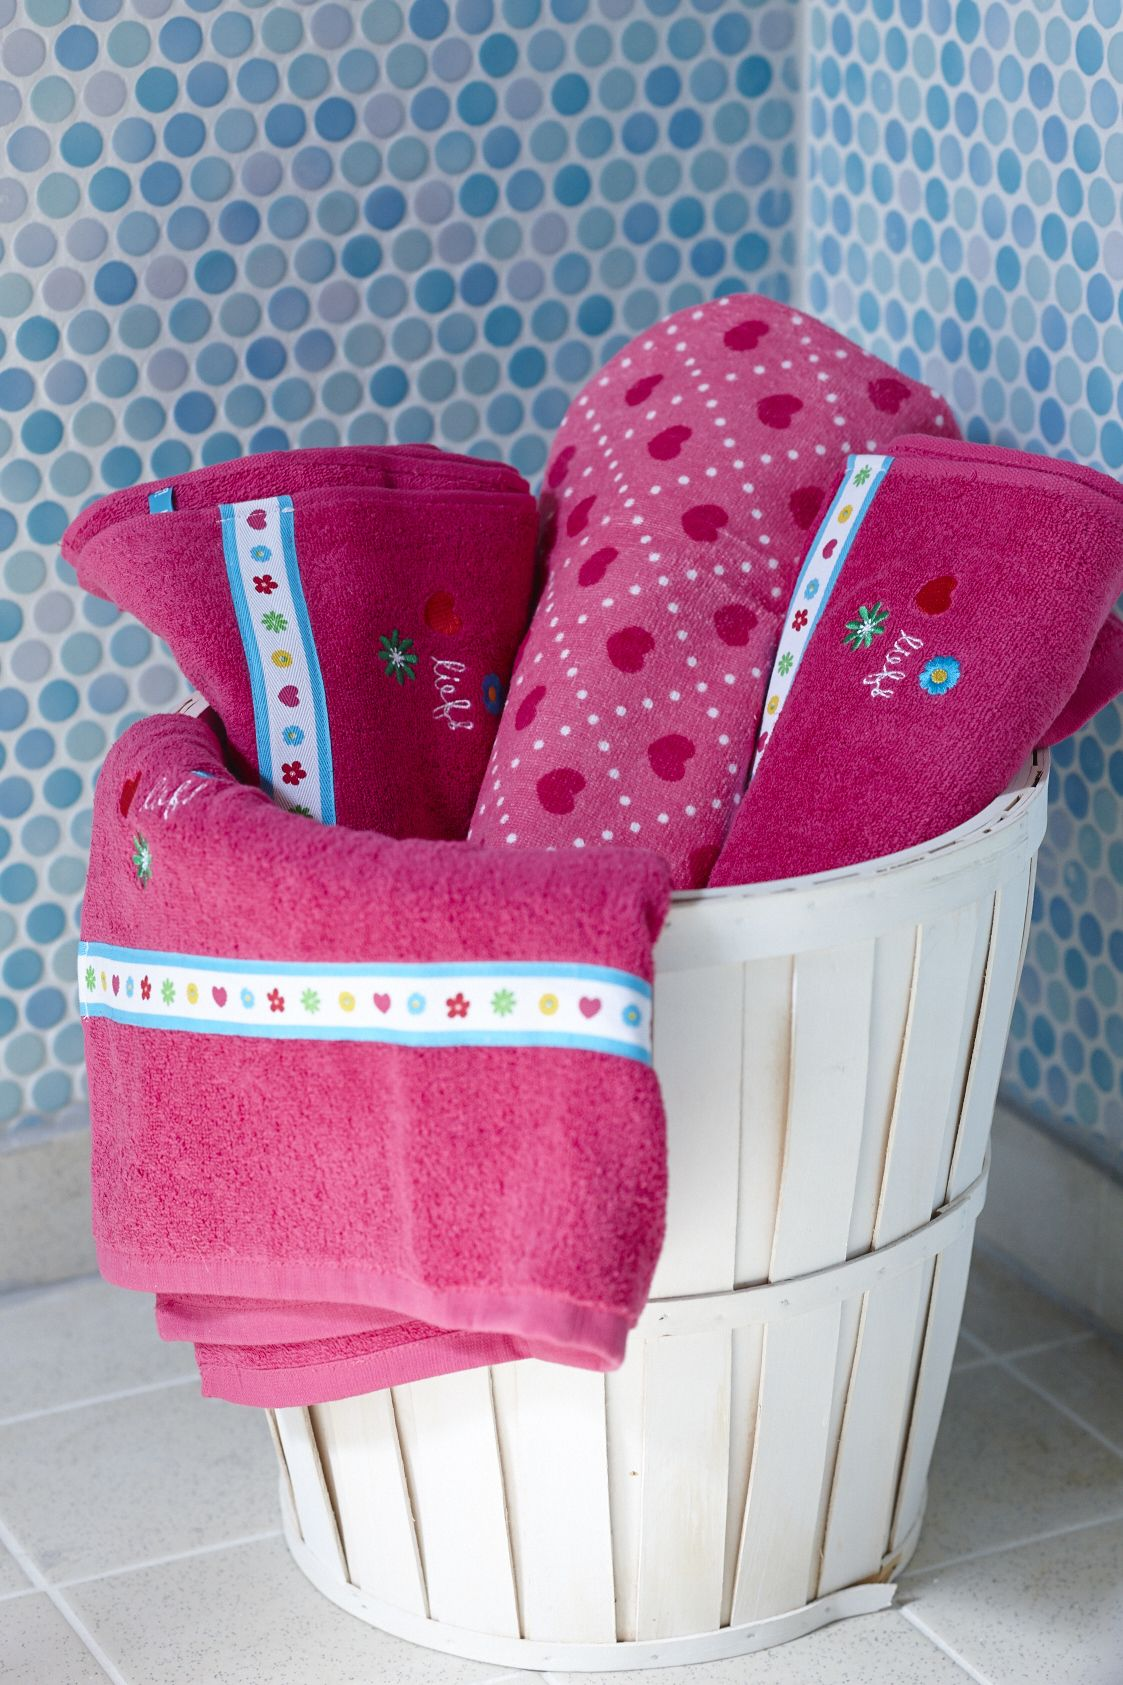 lief lifestyle towels www.lieflifestyle.nl................ juego ...